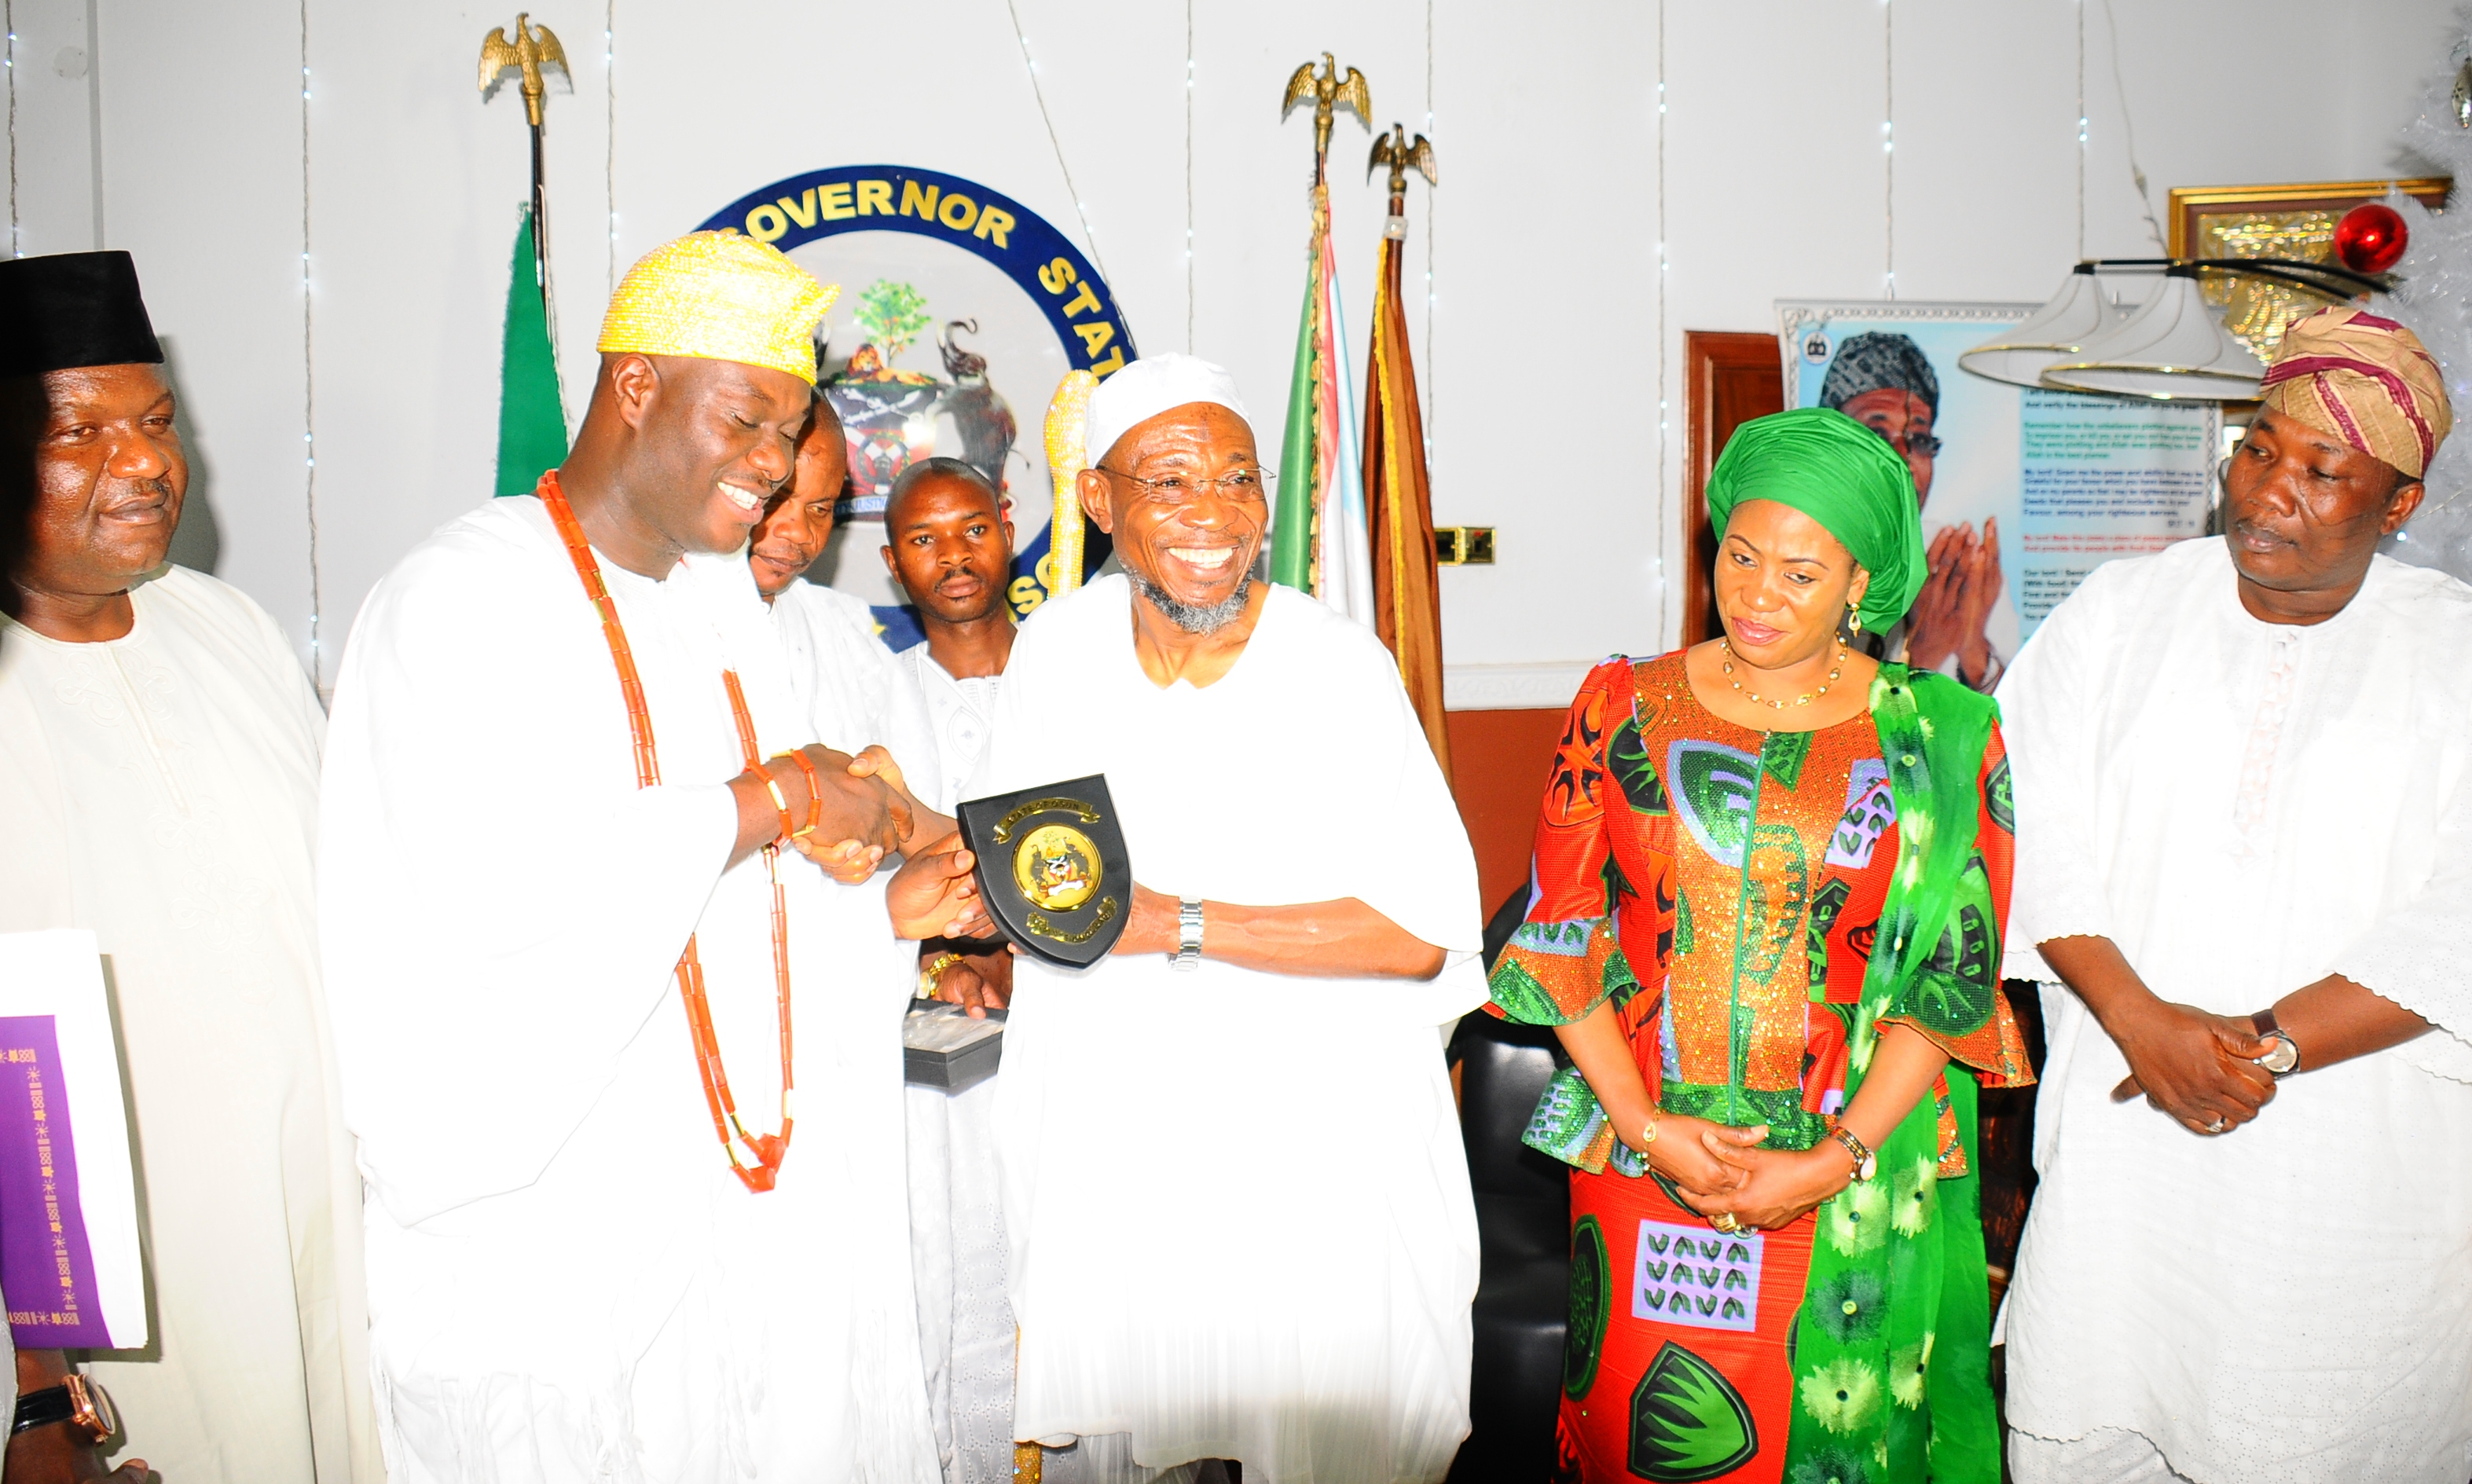 From left, Chairman of All Progressives Congressives Osun, Prince Gboyega Famodun; Ooni of Ife, Oba Adeyeye Enitan Ogunwusi; Governor State of Osun, Ogbeni Rauf Aregbesola; his wife, Sherifat and Speaker, House of Assembly, Hon. Nejeem Salam, during a visit by the monarch to the Governor at the Government House, Osogbo on Wednesday 06-01-2016